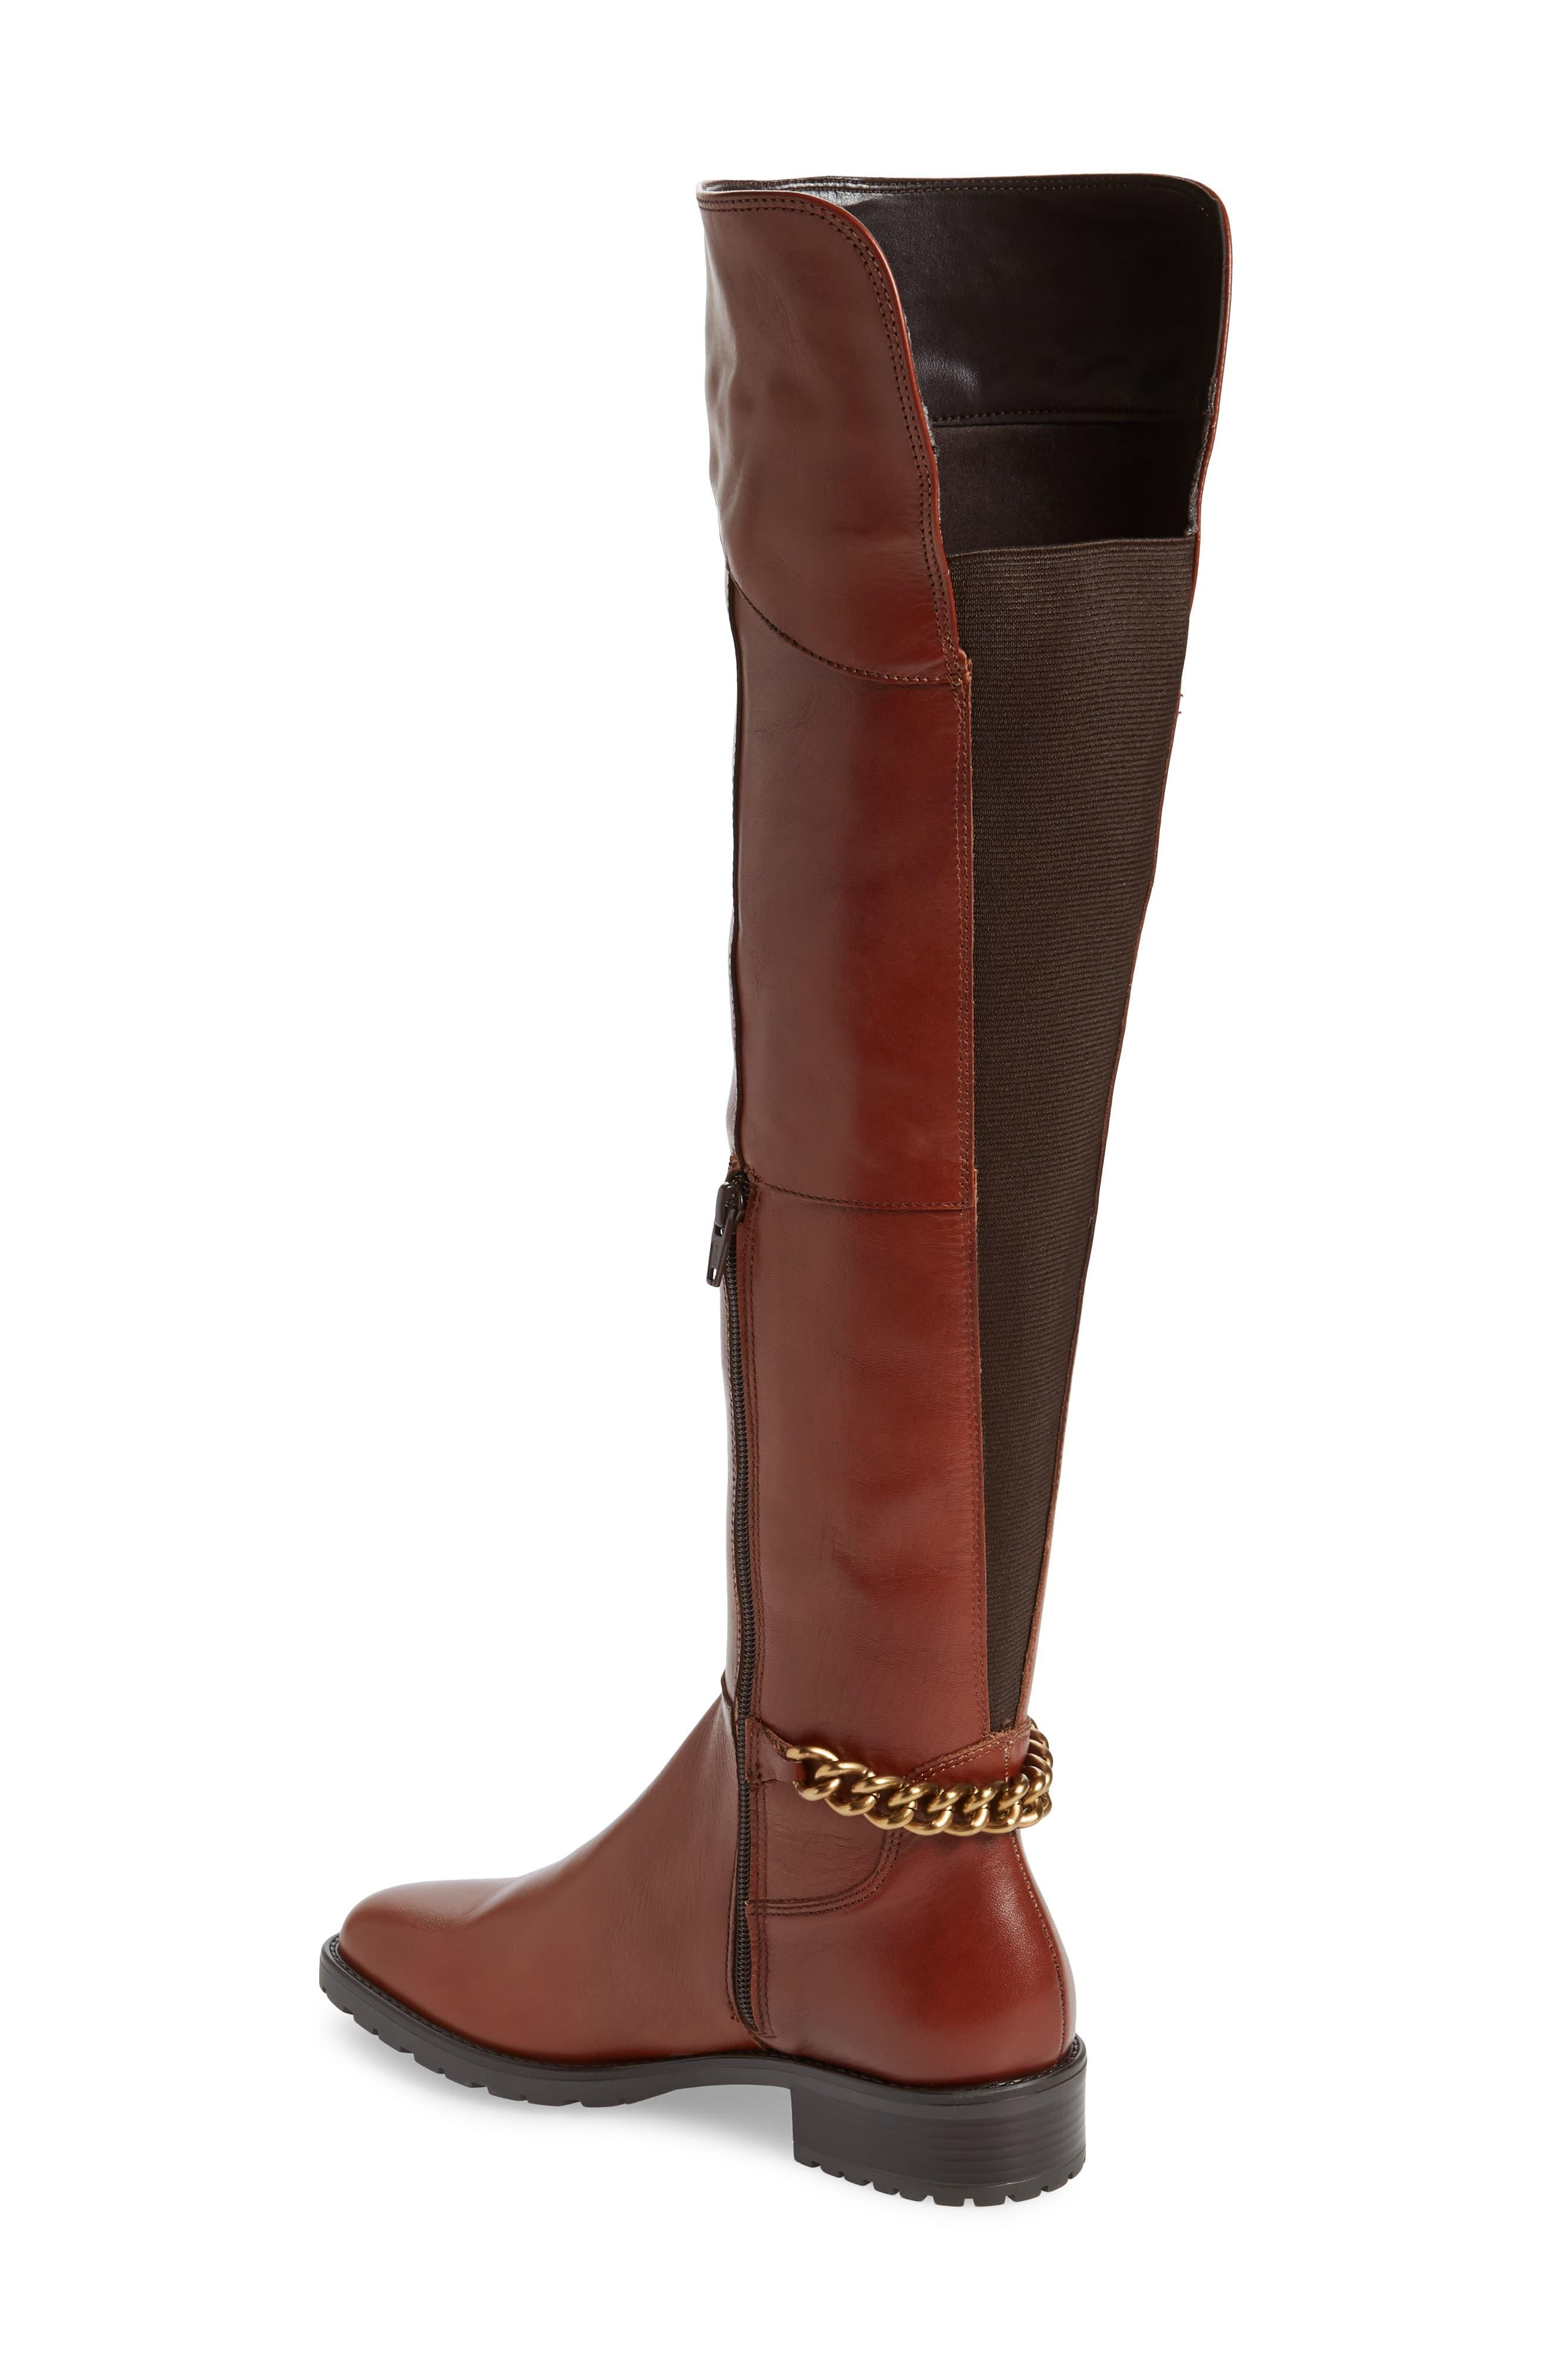 Vito Over The Knee Boot in Tan Leather